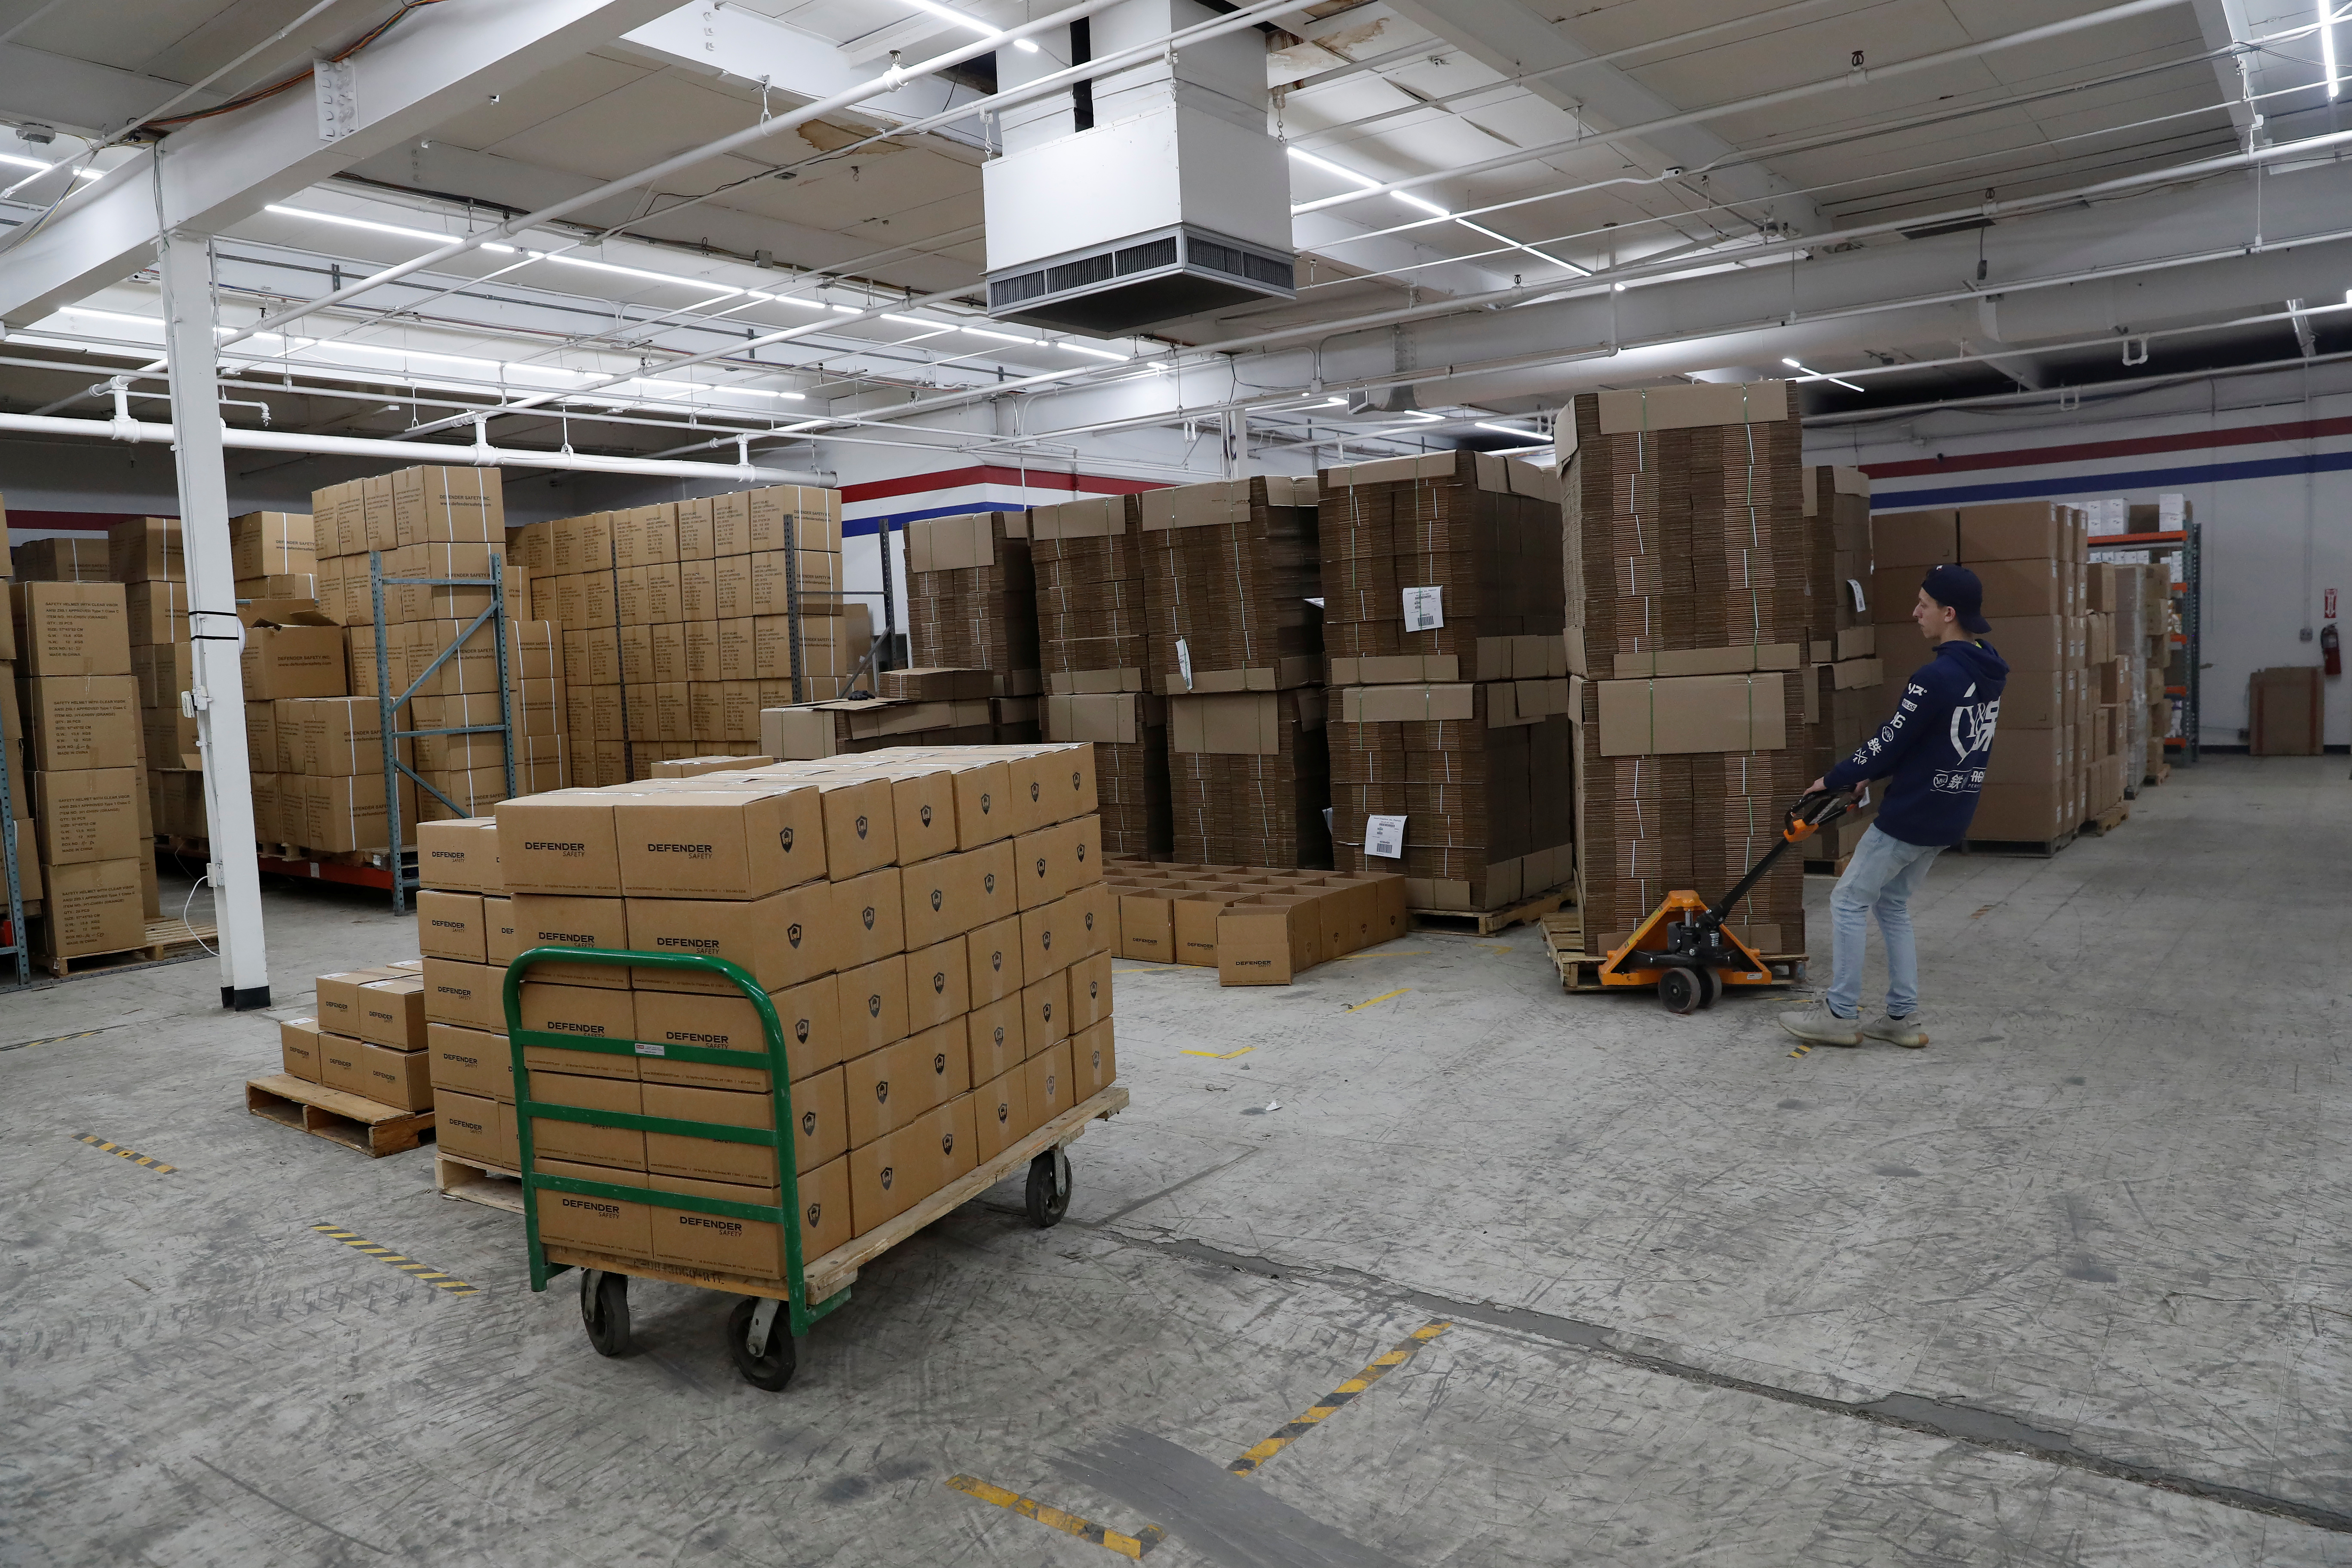 An employee of Defender Safety moves products inside their warehouse in Plainview, New York, U.S., March 24, 2021. REUTERS/Shannon Stapleton/File Photo